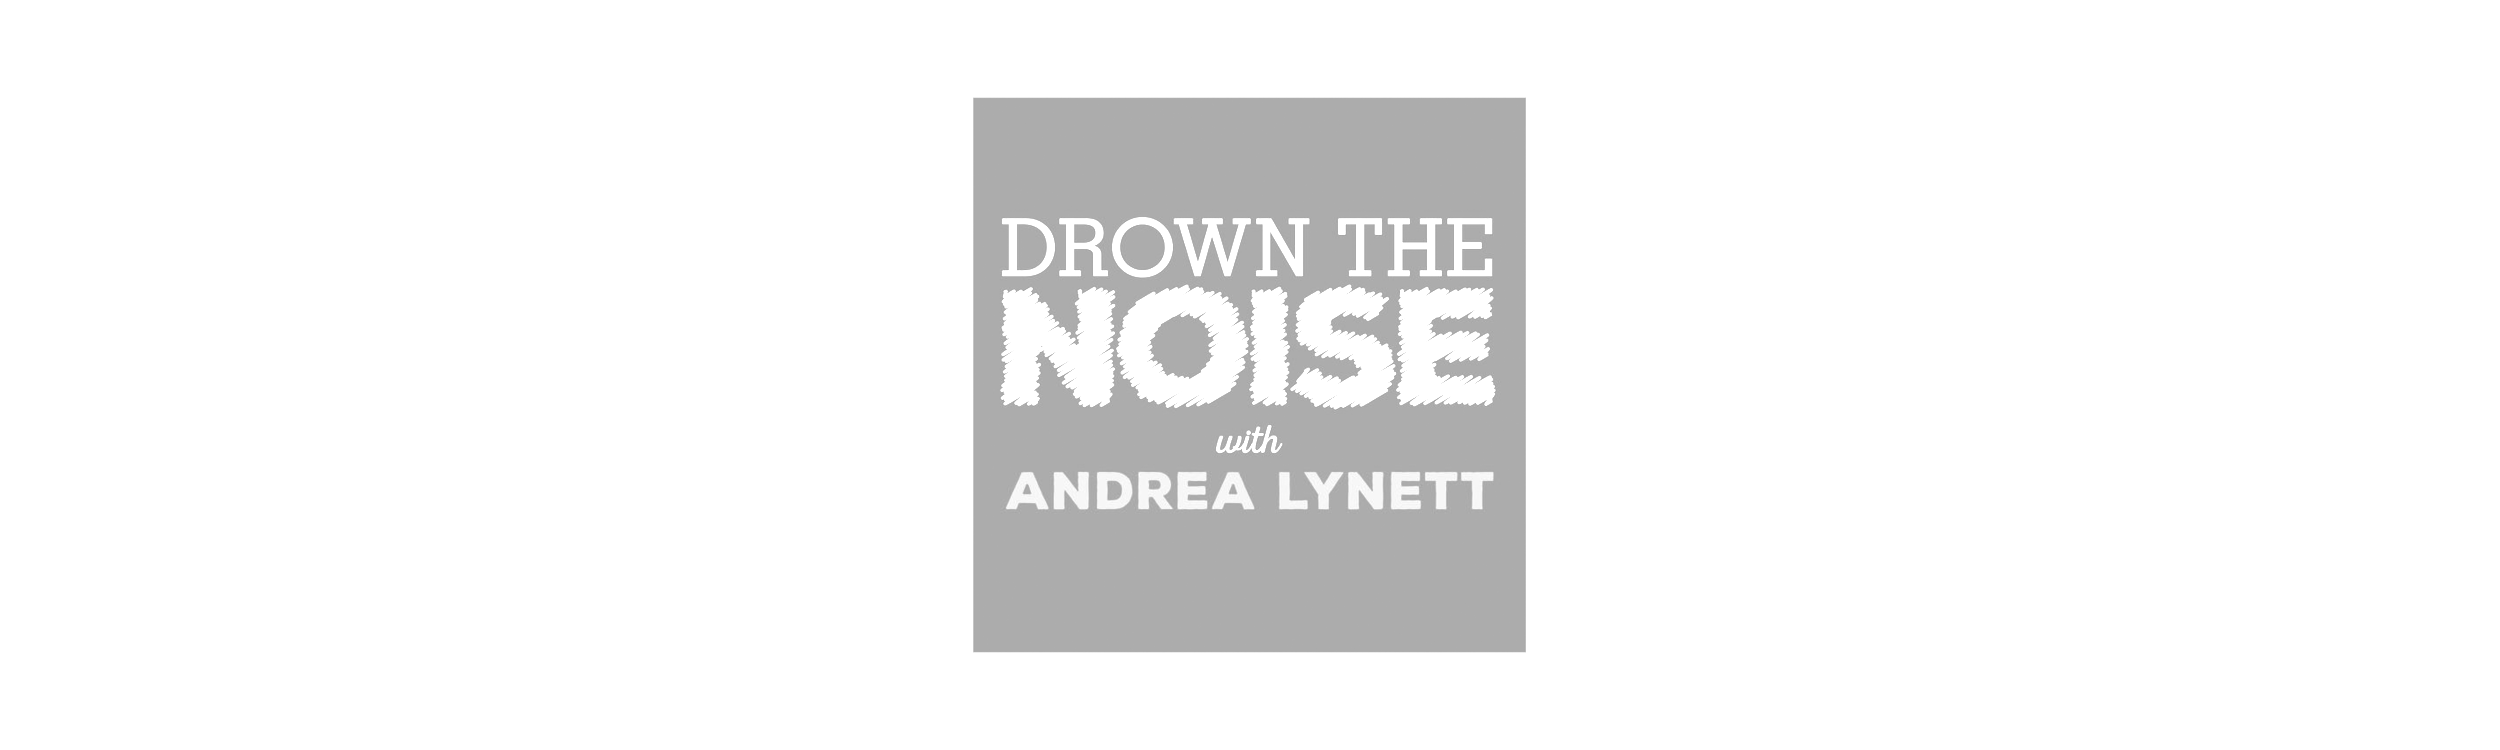 drown the noise podcast elise darma logo.png